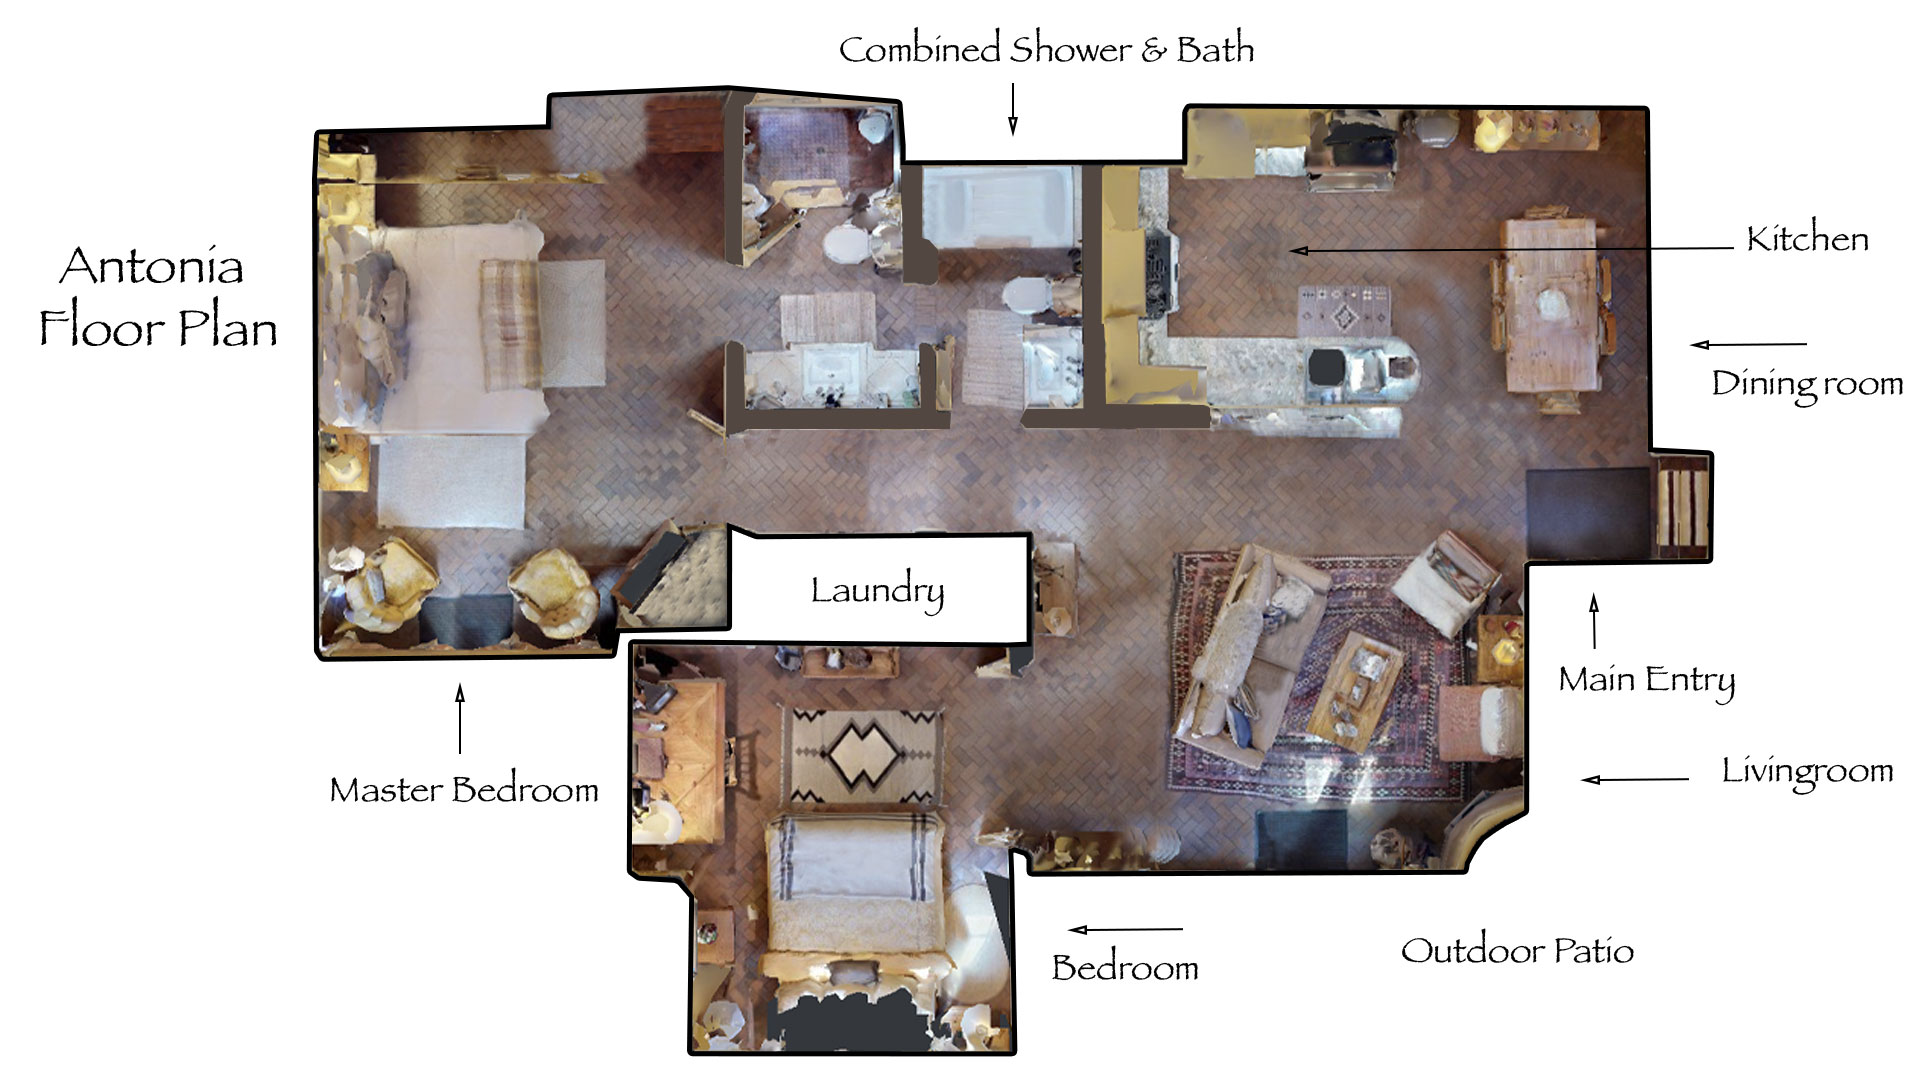 Floor Plan for Antonia